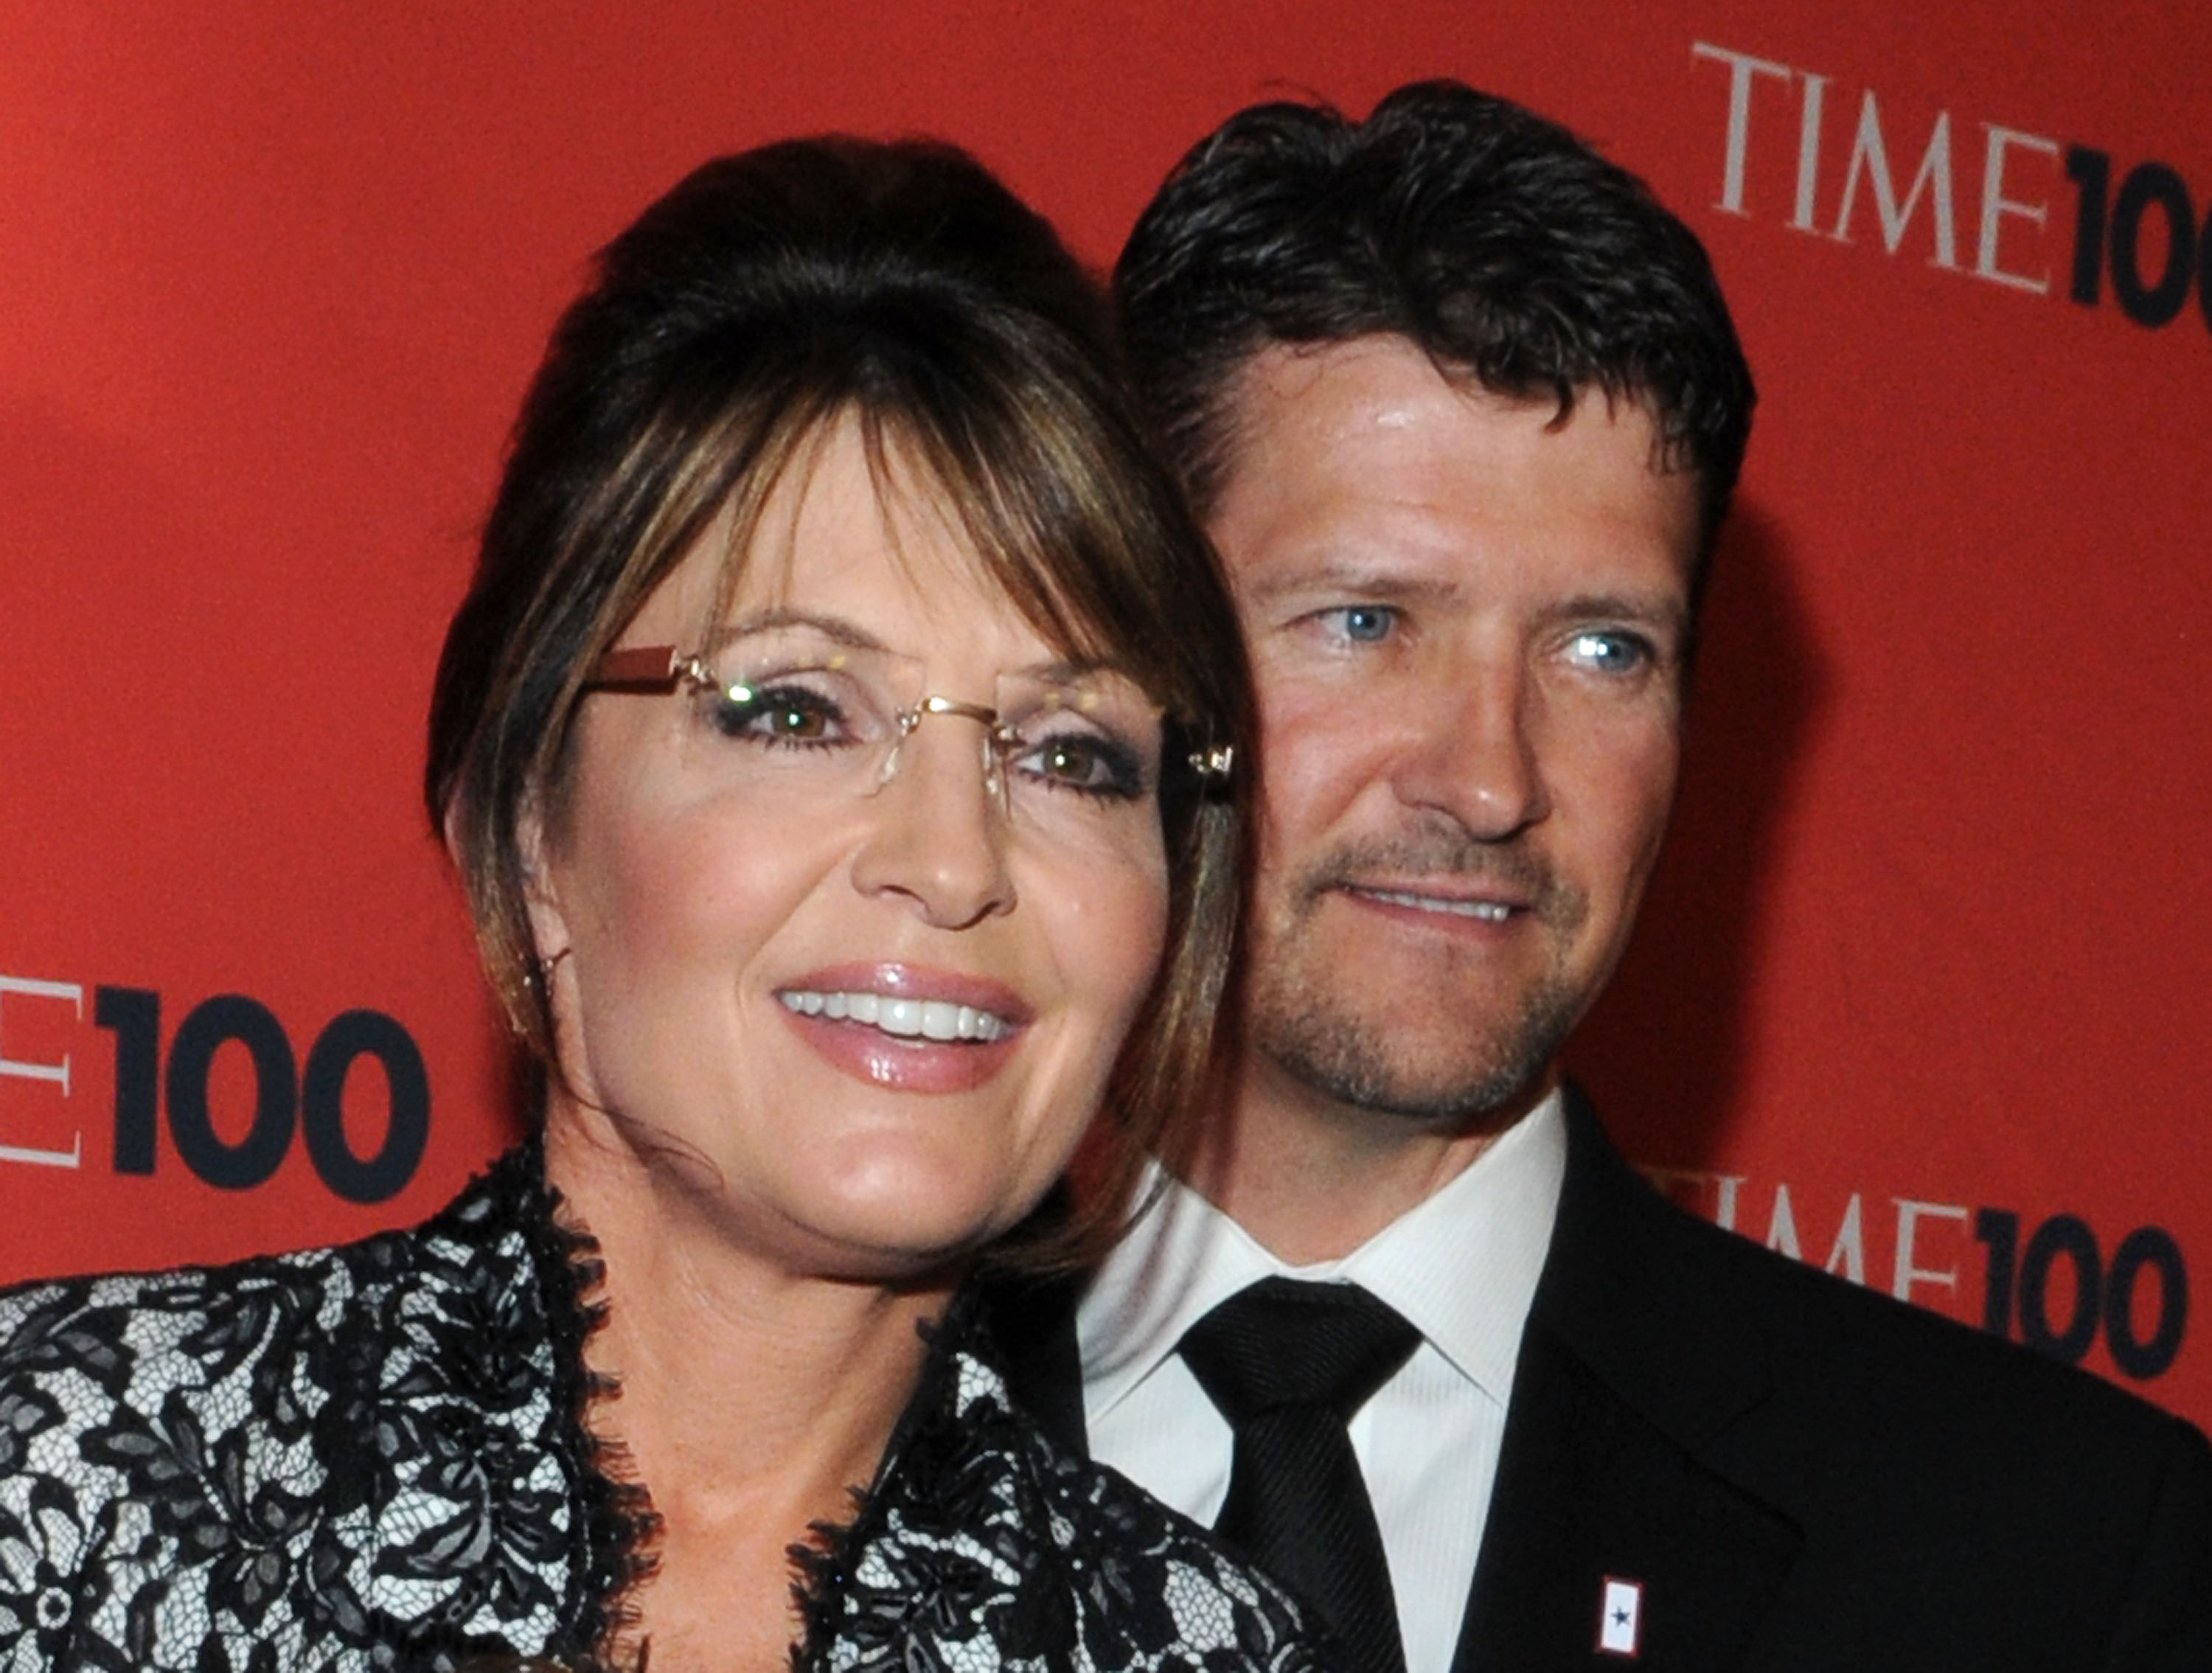 Sarah Palin's husband seeking divorce, court papers appear to show